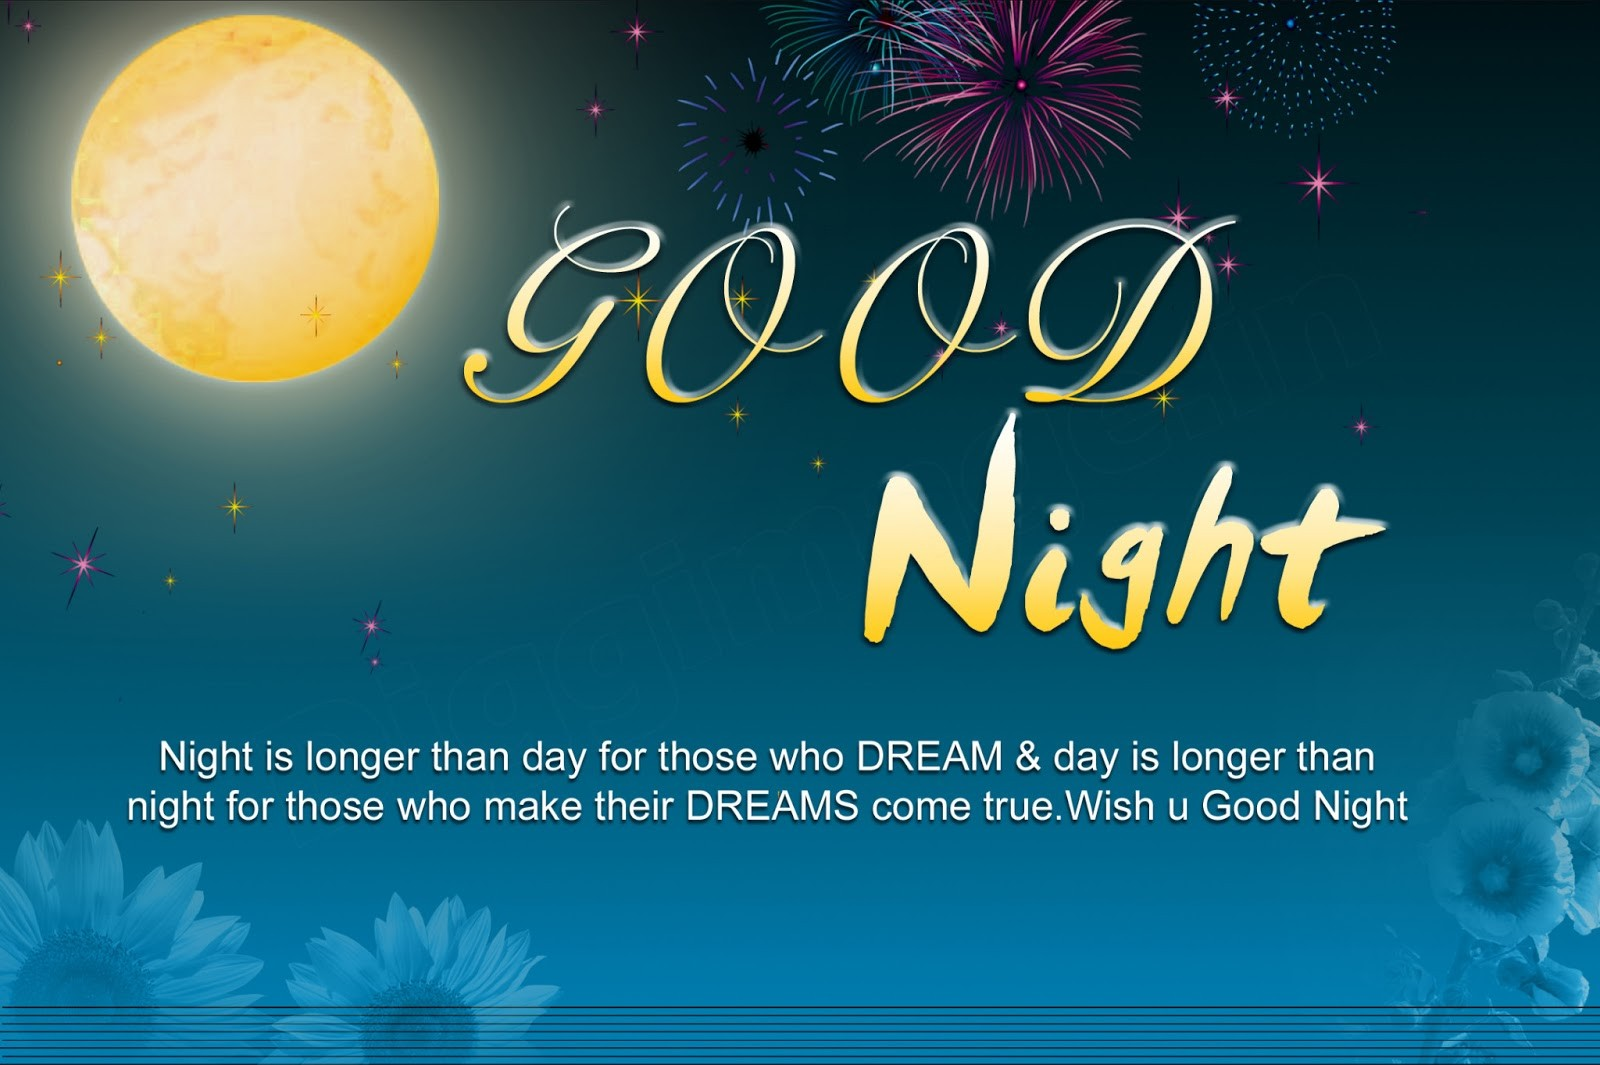 Good-night-wishes-wallpapers-Images-Quotes